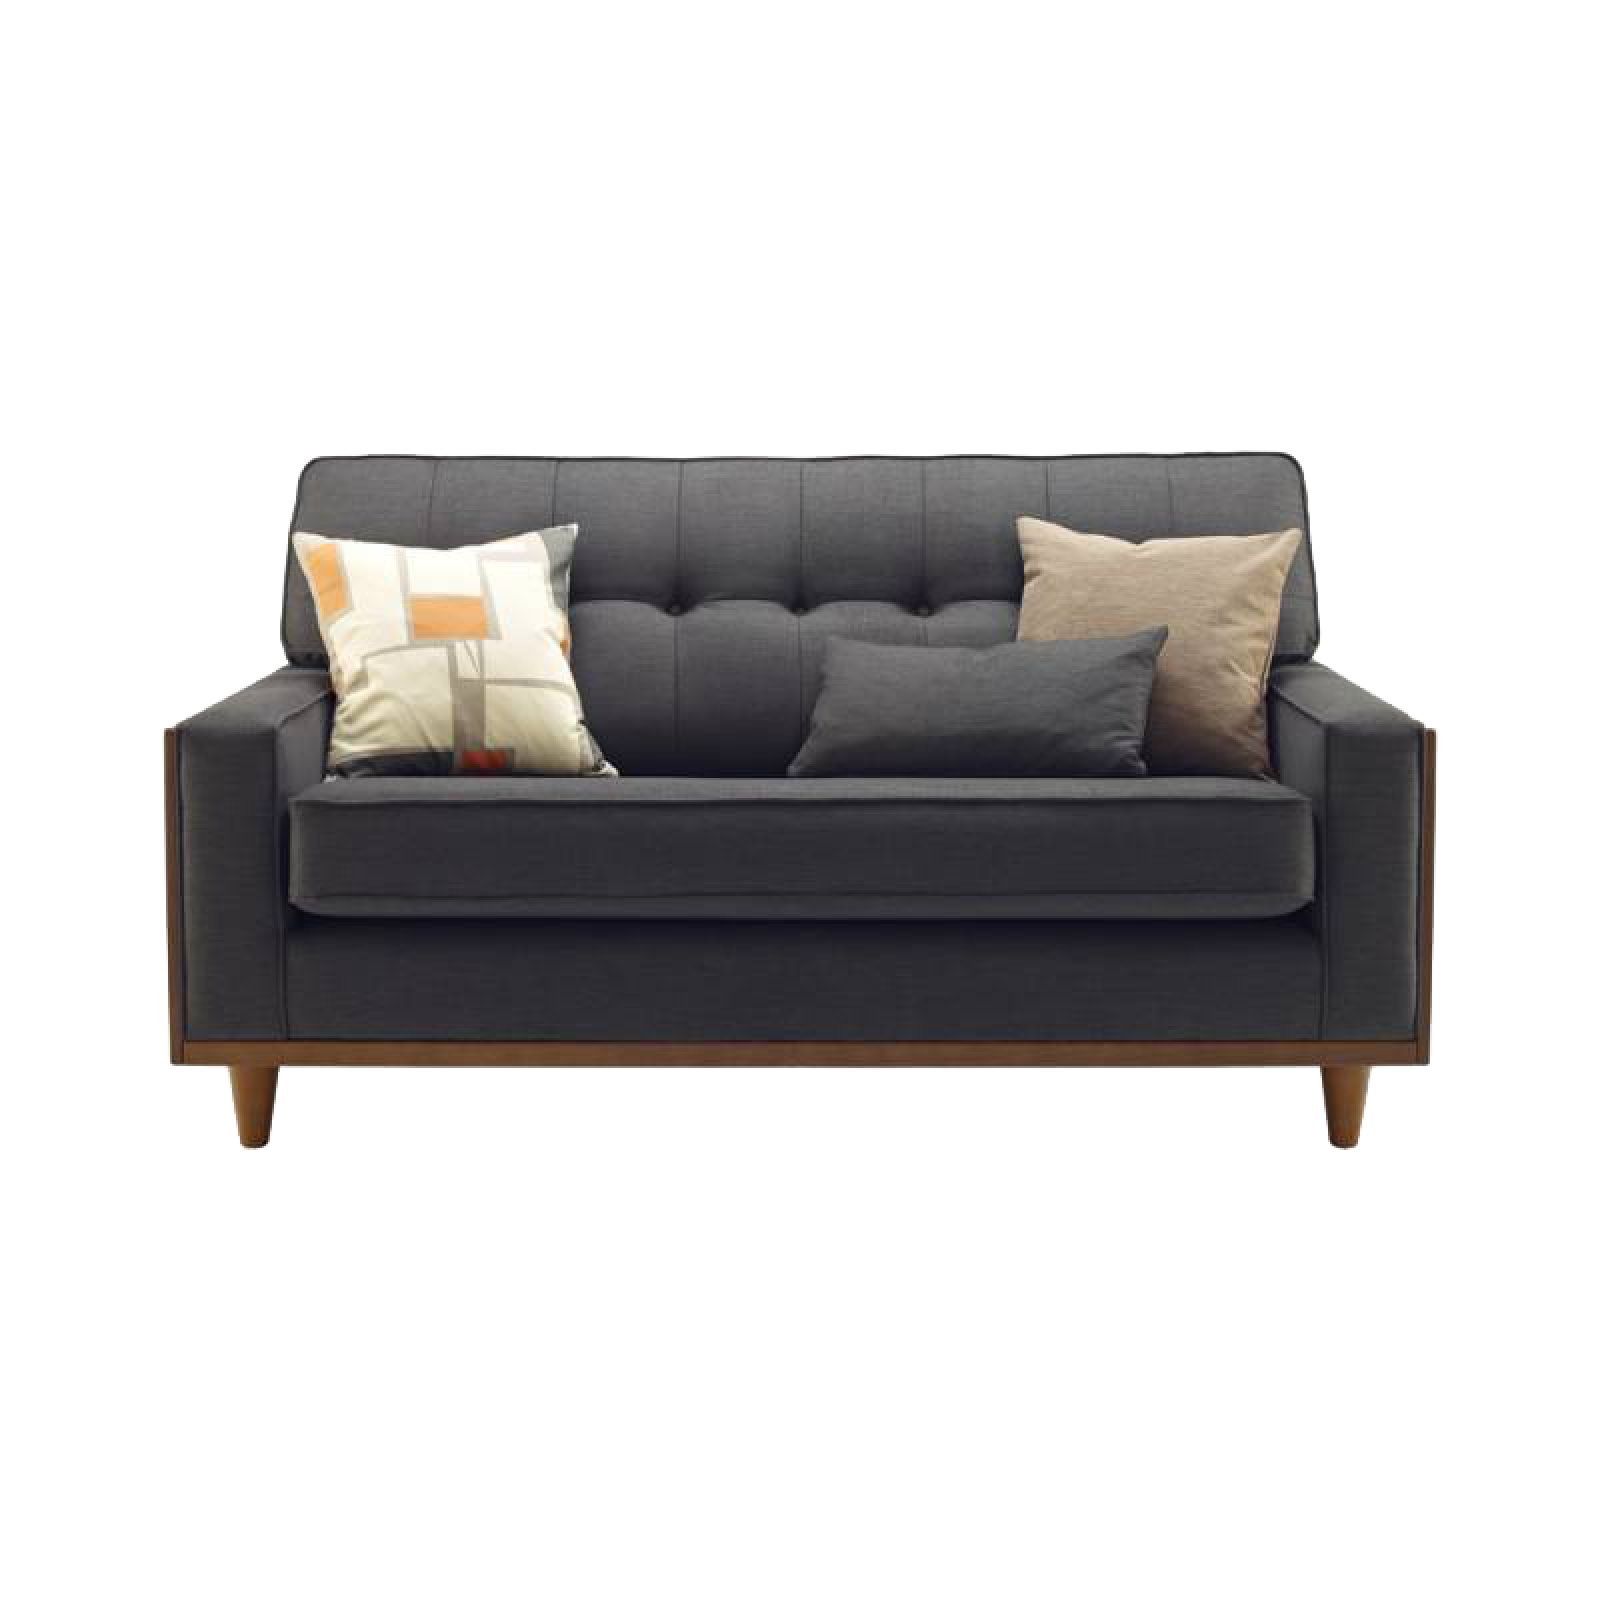 Sofa Fancy Transparent Png Clipart Free Download Ya Webdesign